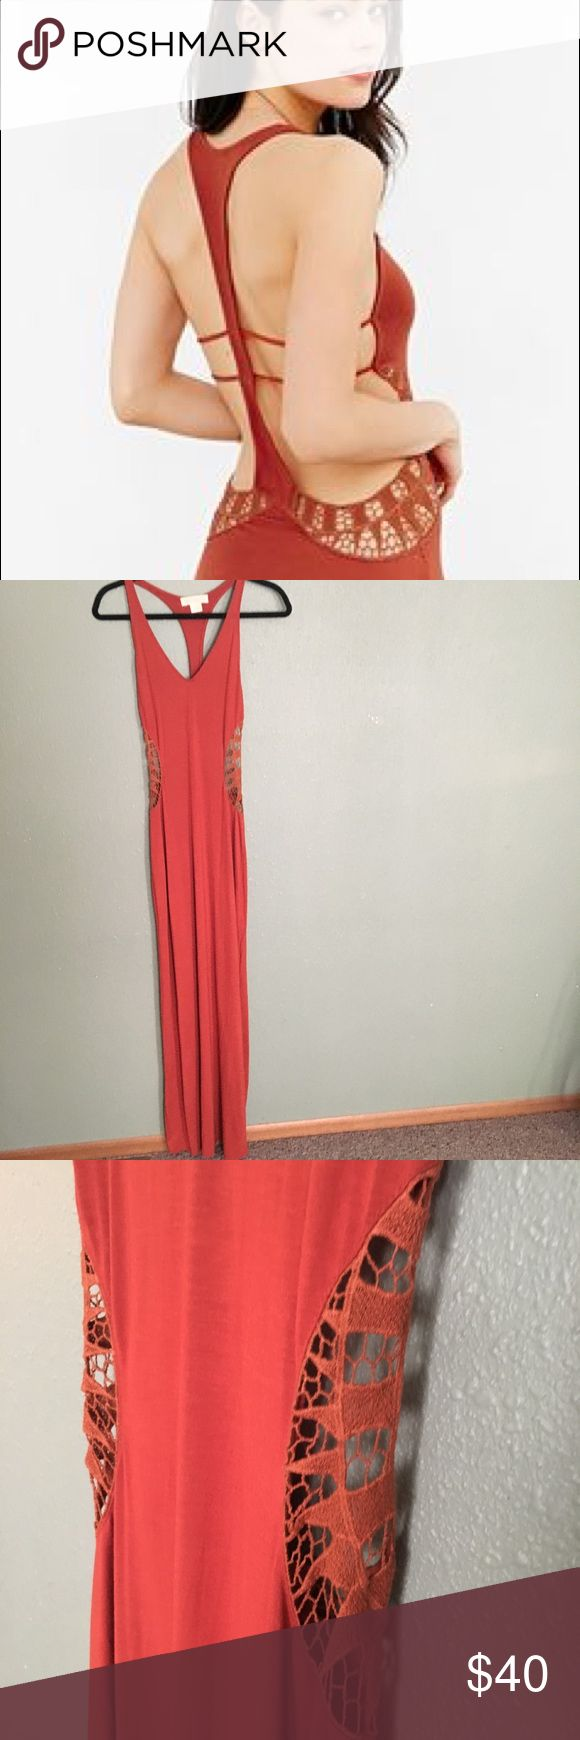 Urban Outfitters Burnt Orange Maxi Dress Sensual burnt orange maxi dress/swim coverup from Urban Outfitters. Features racetrack, cutout detail, and long flattering fit. Color is true burnt orange. Excellent condition, never worn. Rock this gorgeous piece on your next vacation! Staring at Stars Dresses Maxi